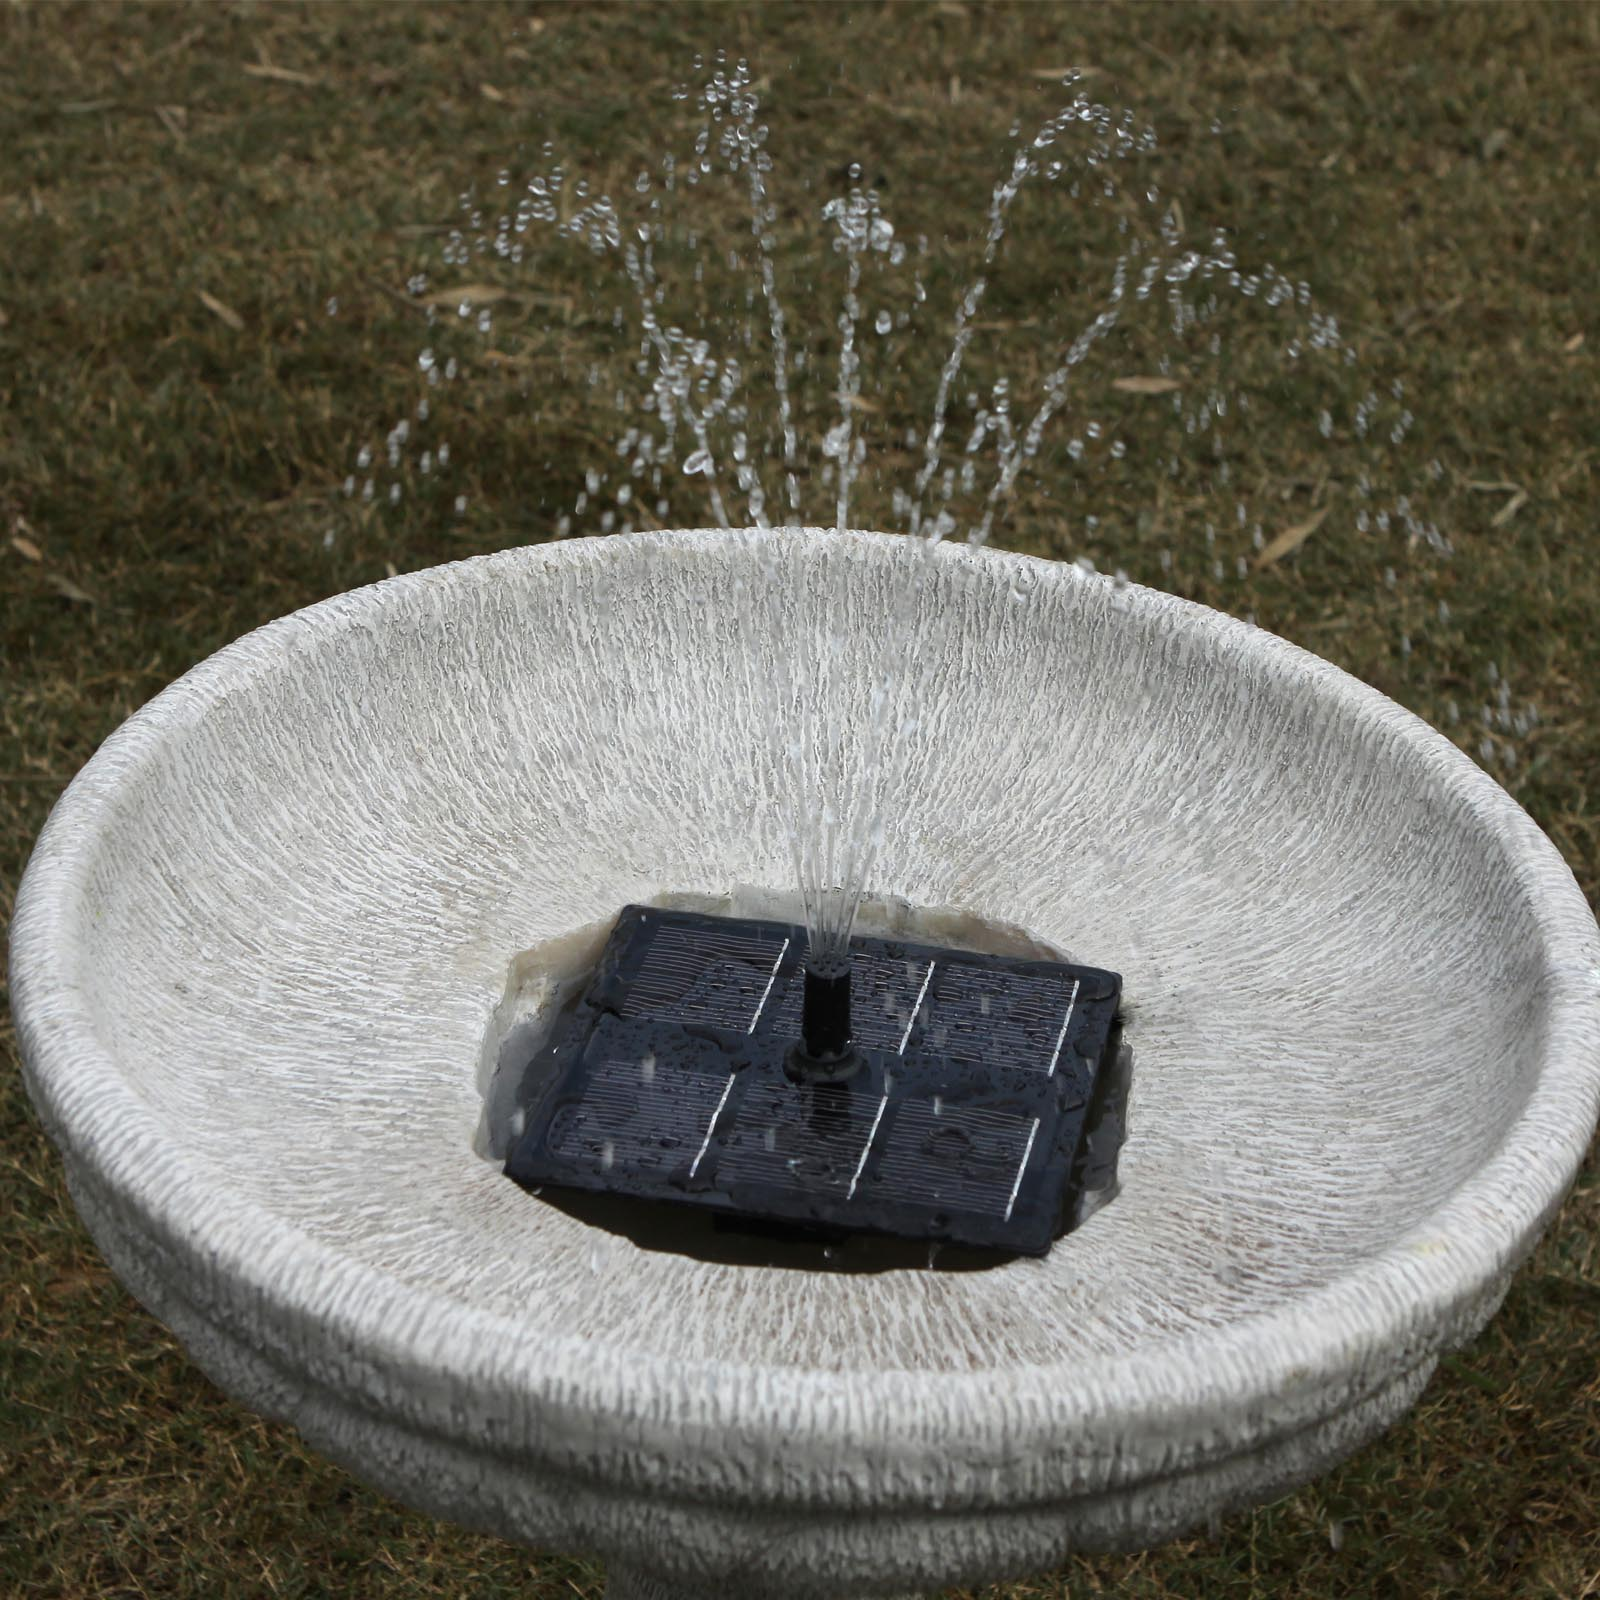 Solar Bird Bath Fountain Kit